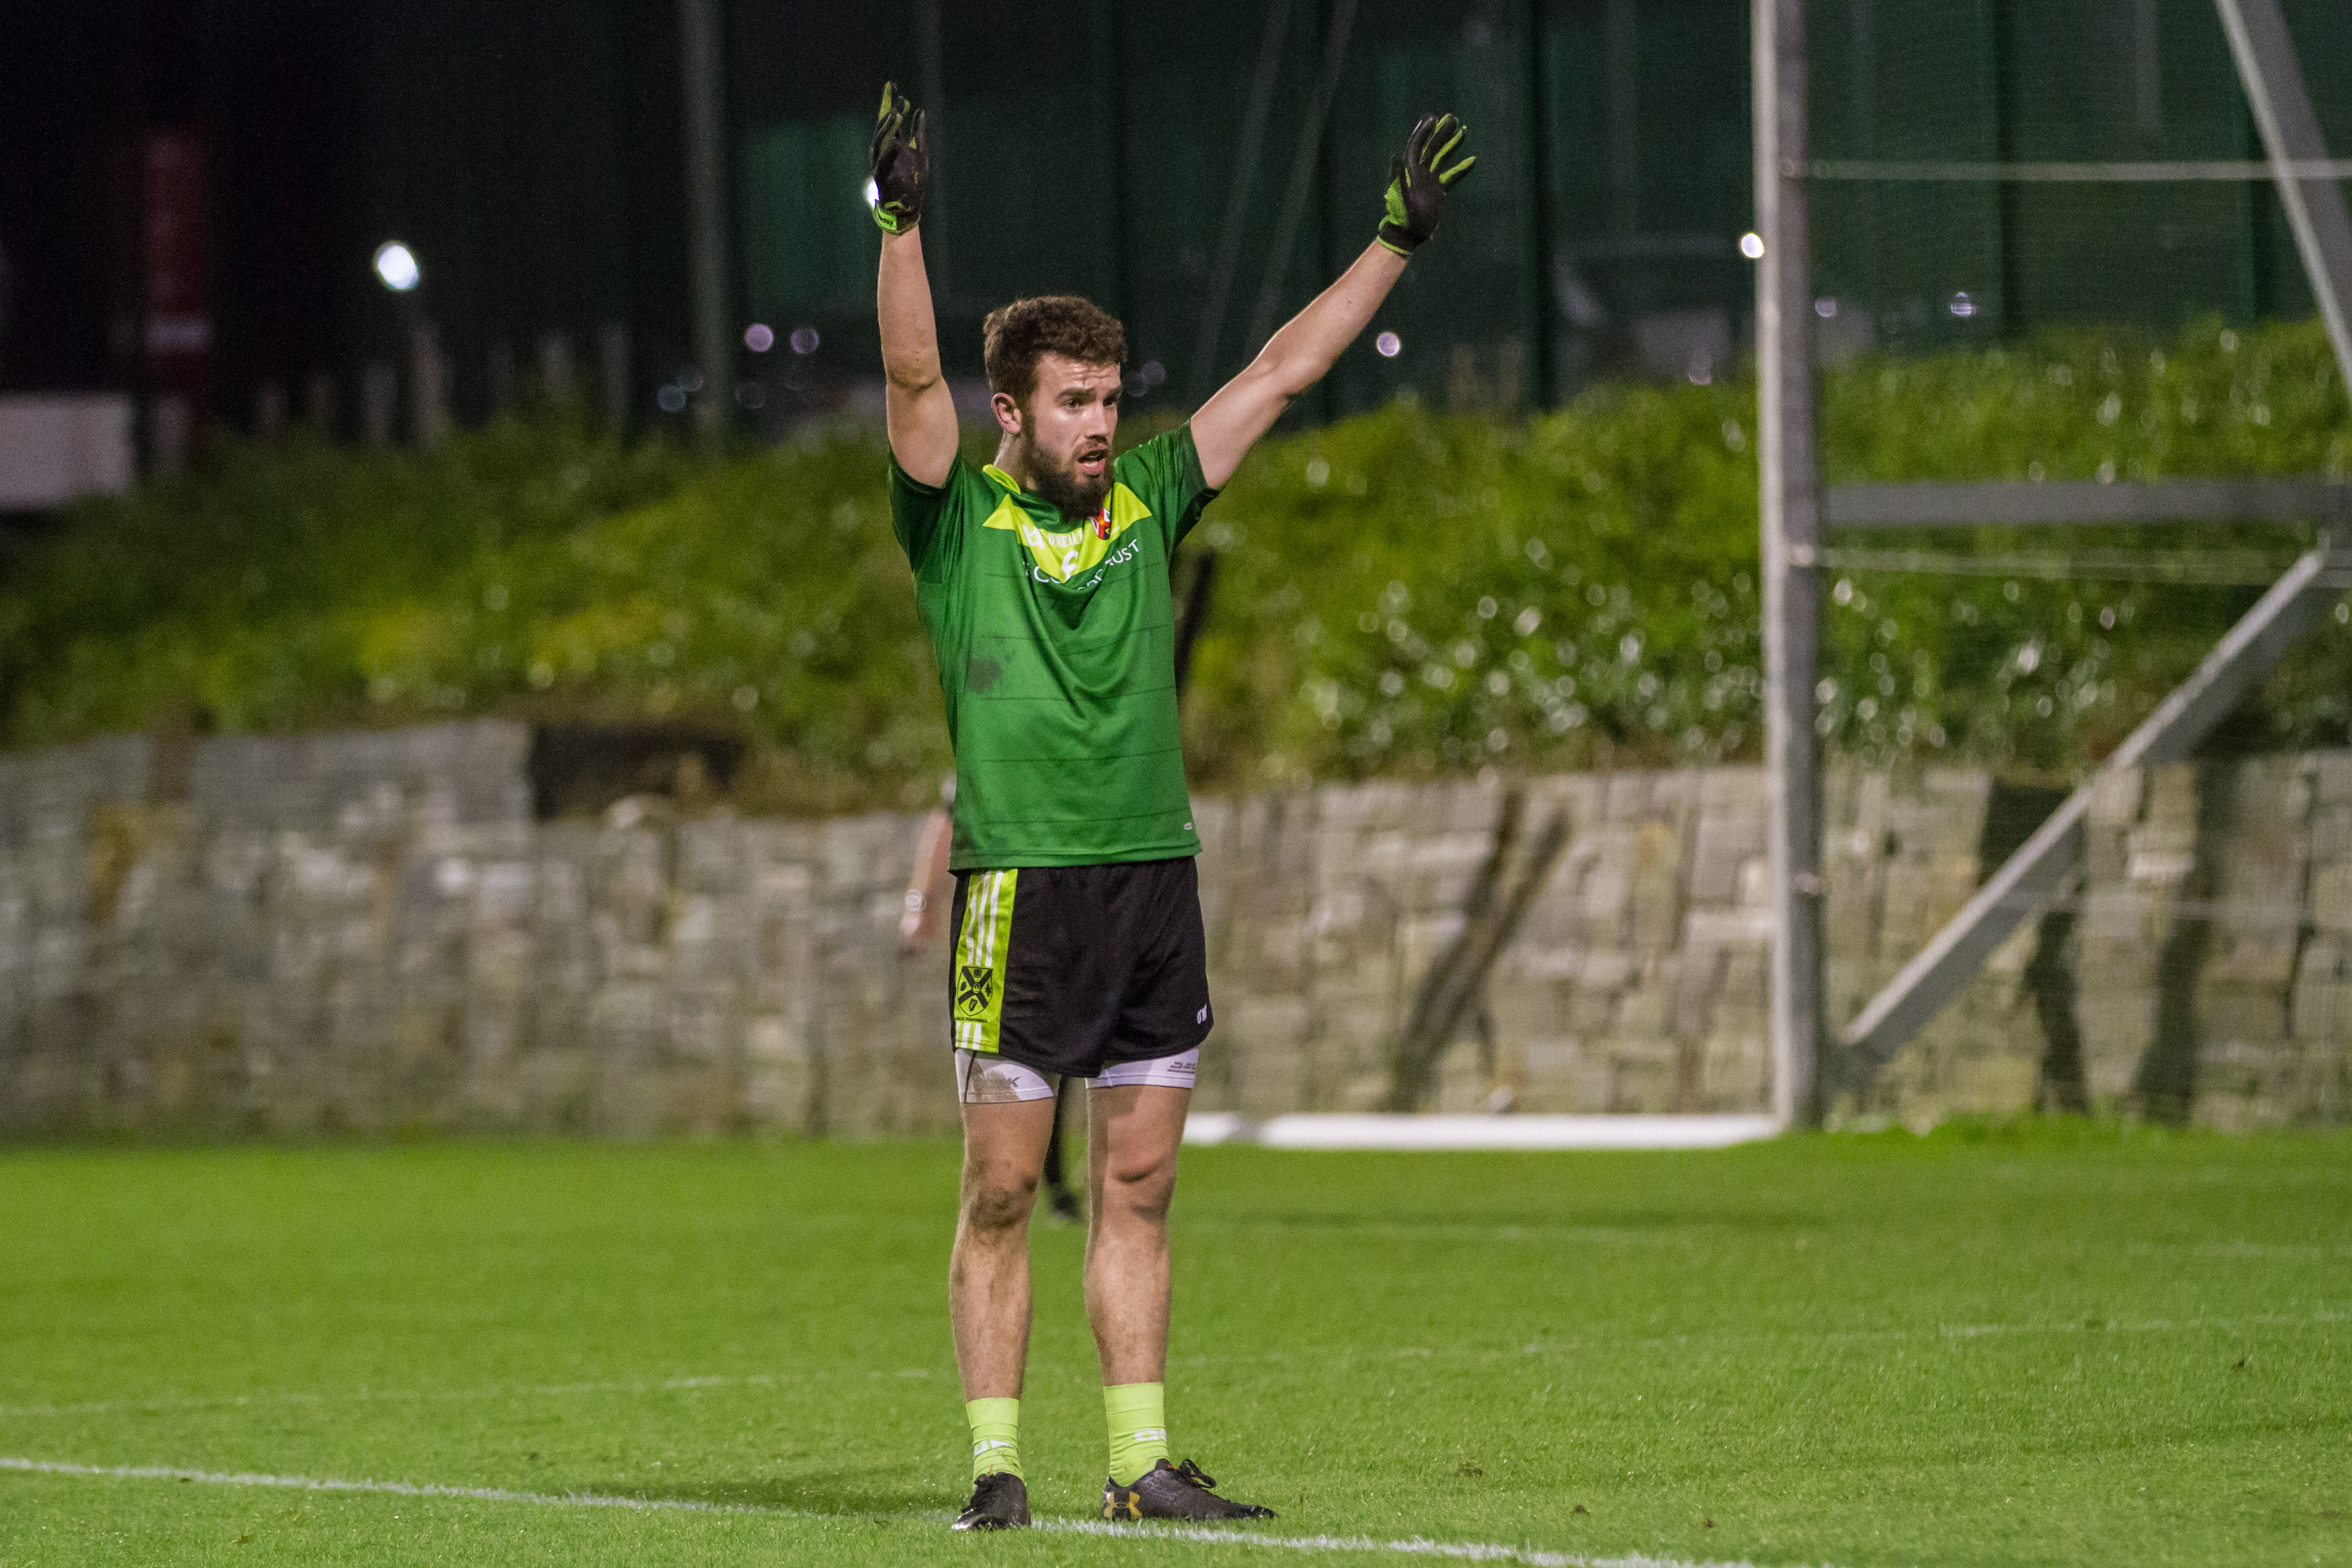 Ryan Cup campaign ends in disappointment